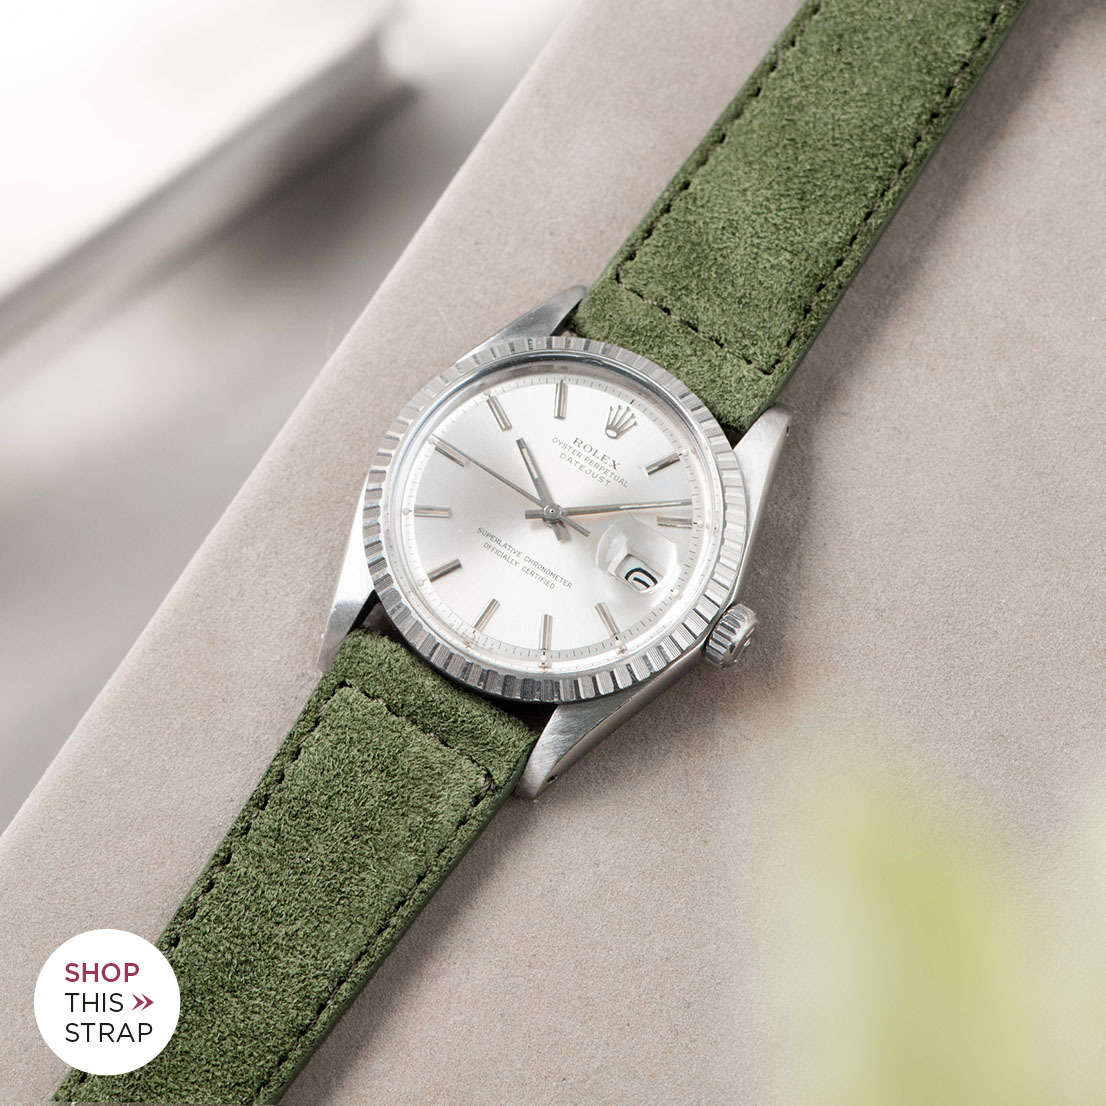 Bulang and sons_Strap Guide_Rolex Datejust Silverdial 1601 1603 1600 1630_OLIVE DRAB GREEN SUEDE LEATHER WATCH STRAP